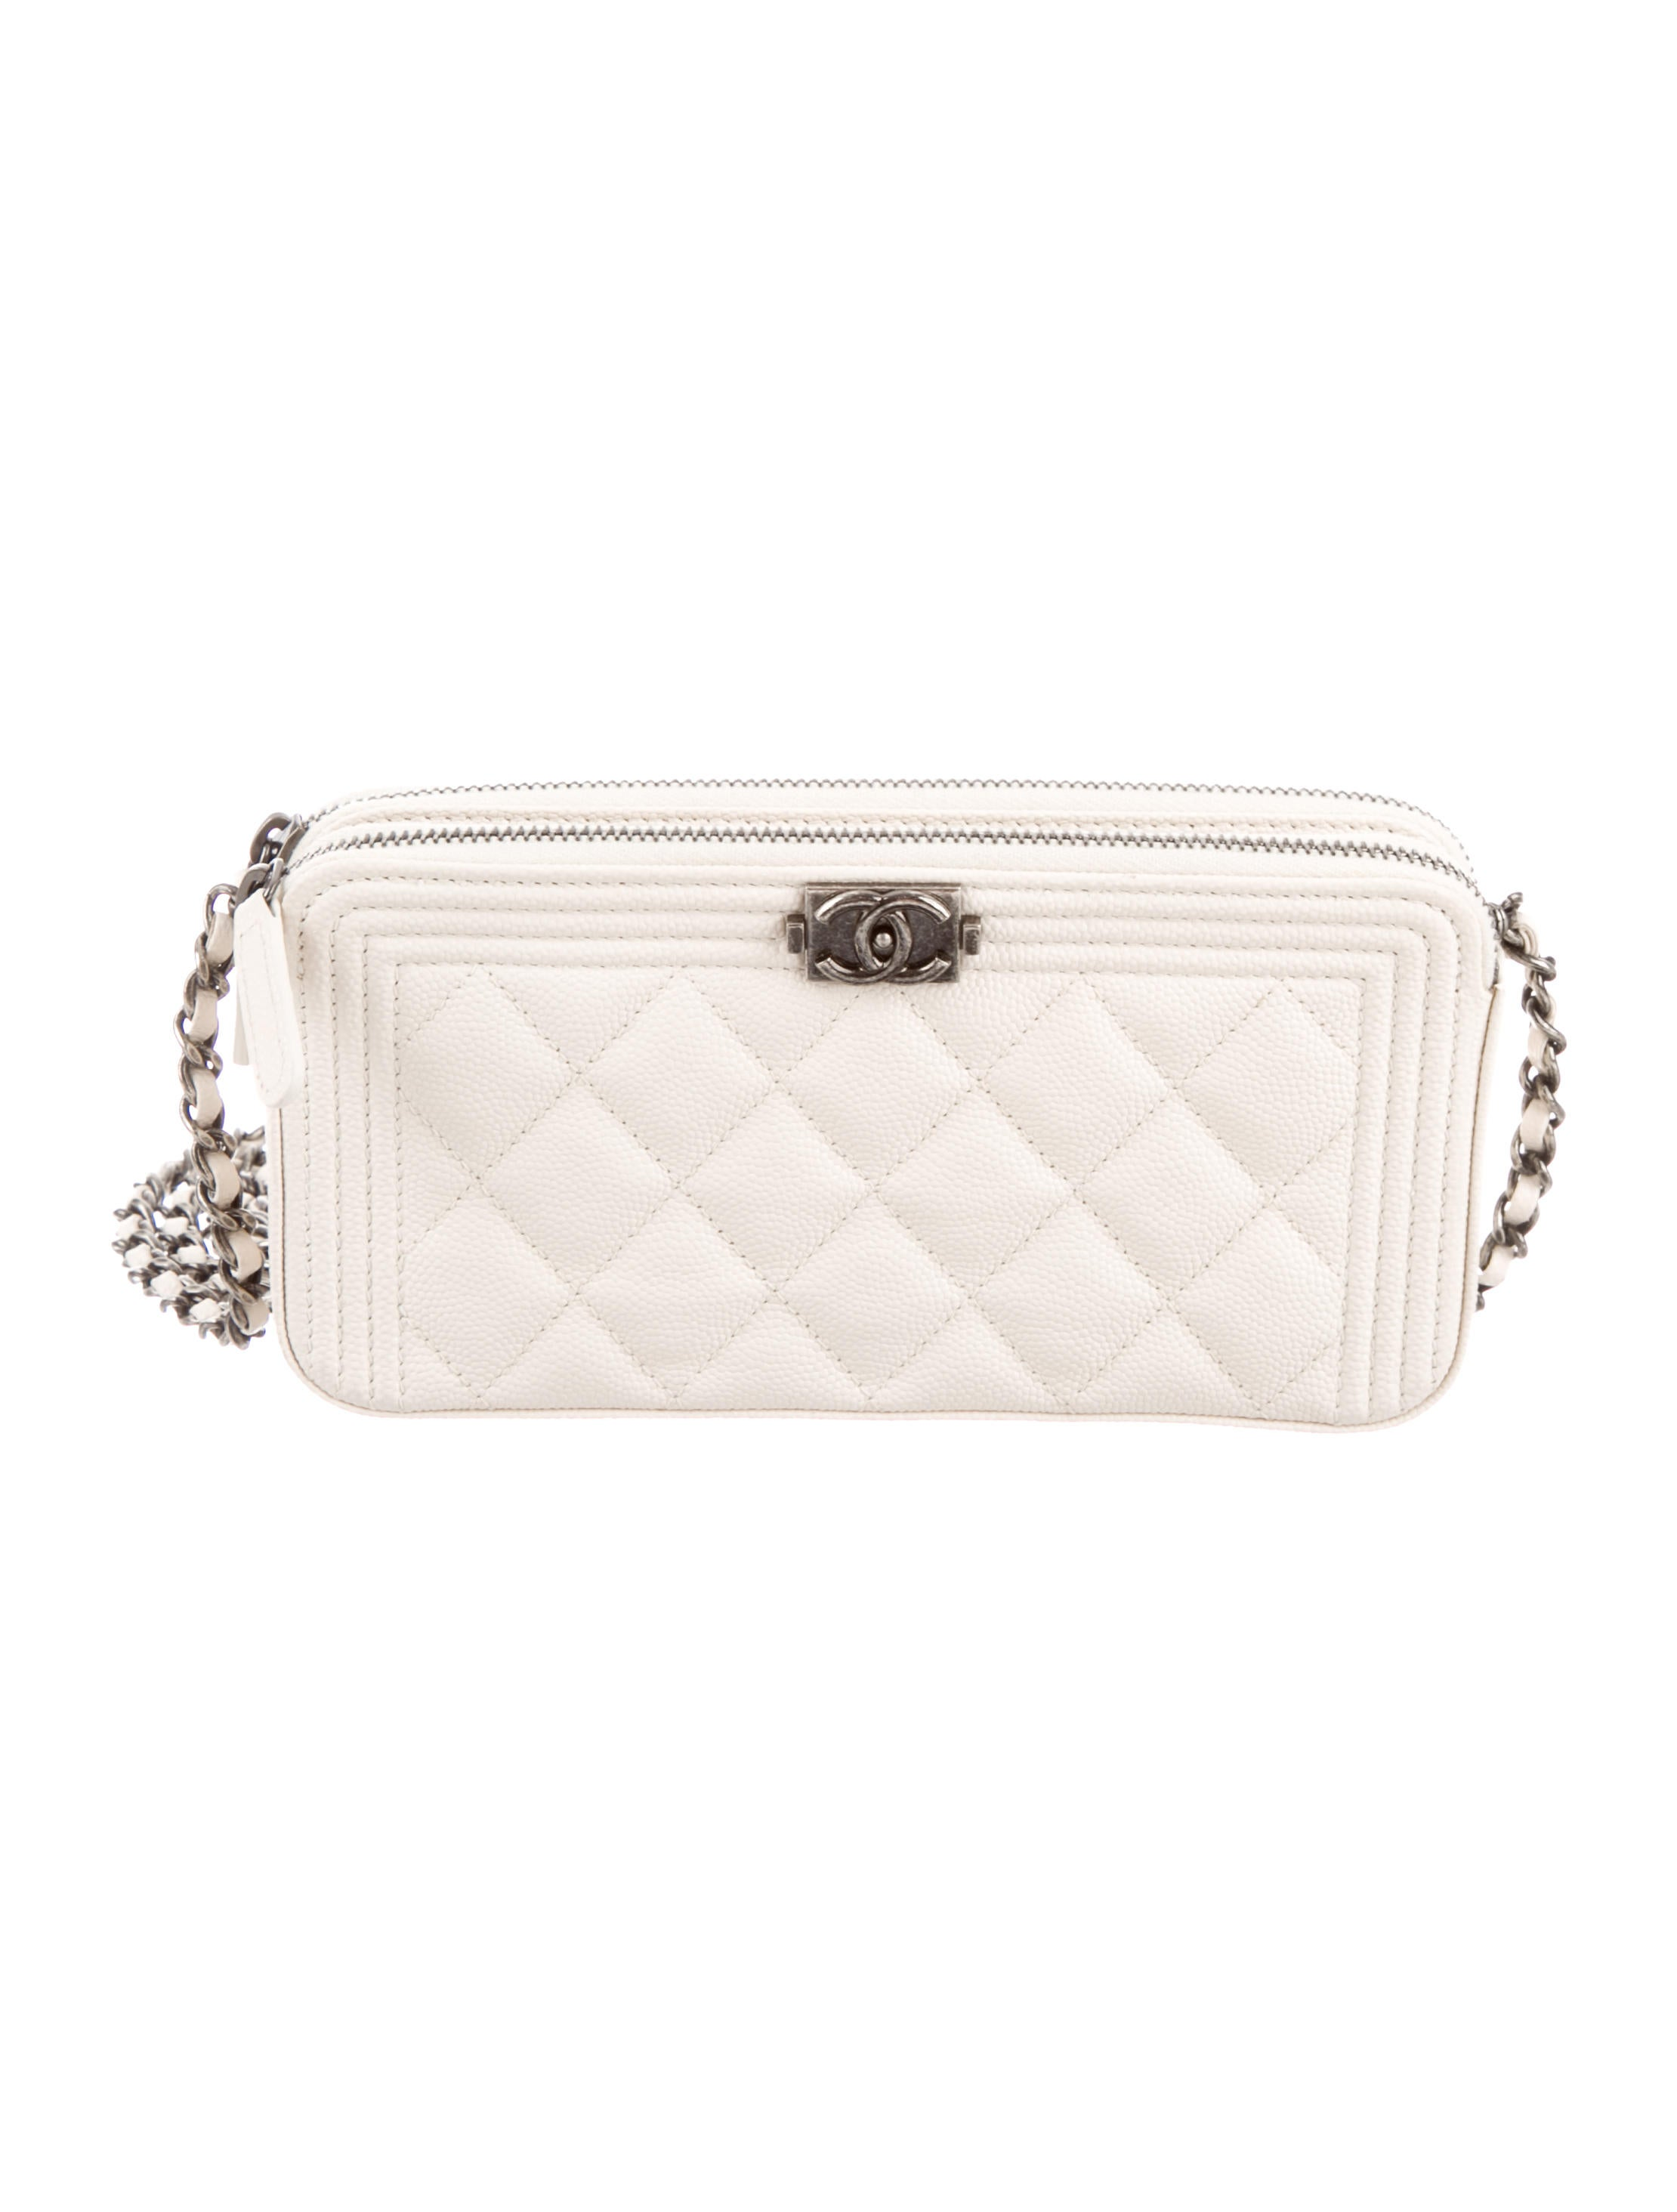 Chanel Crossbody Bags  a5be5367acd7f